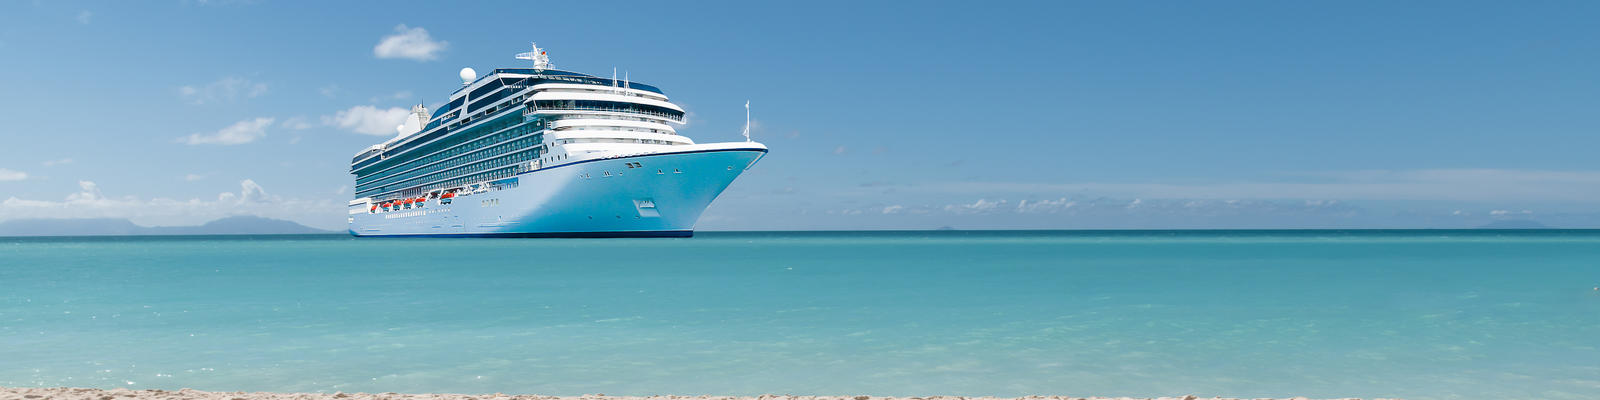 What's Included in Your Cruise Fare? (Photo: By NAPA/Shutterstock)